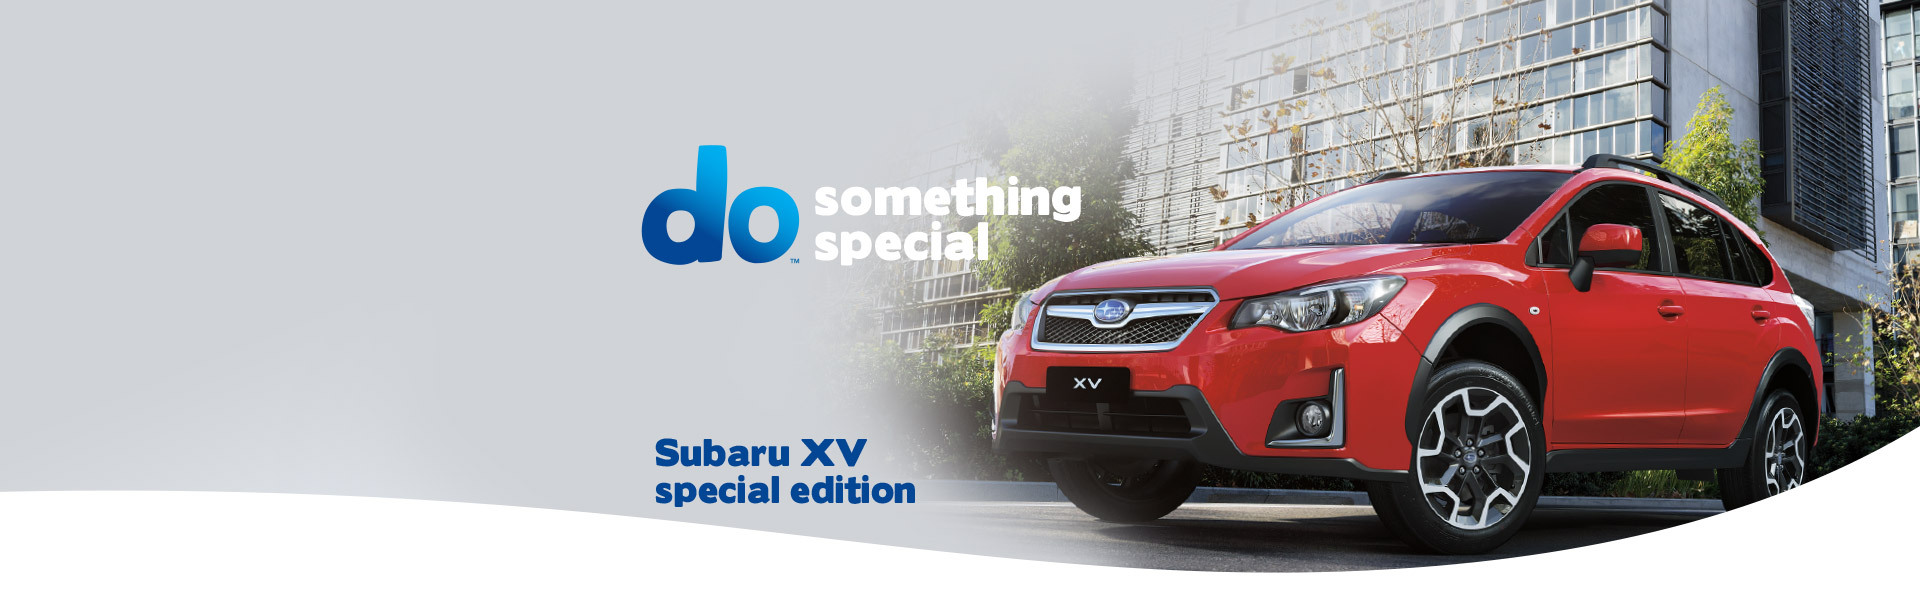 Subaru XV Red Special Edition